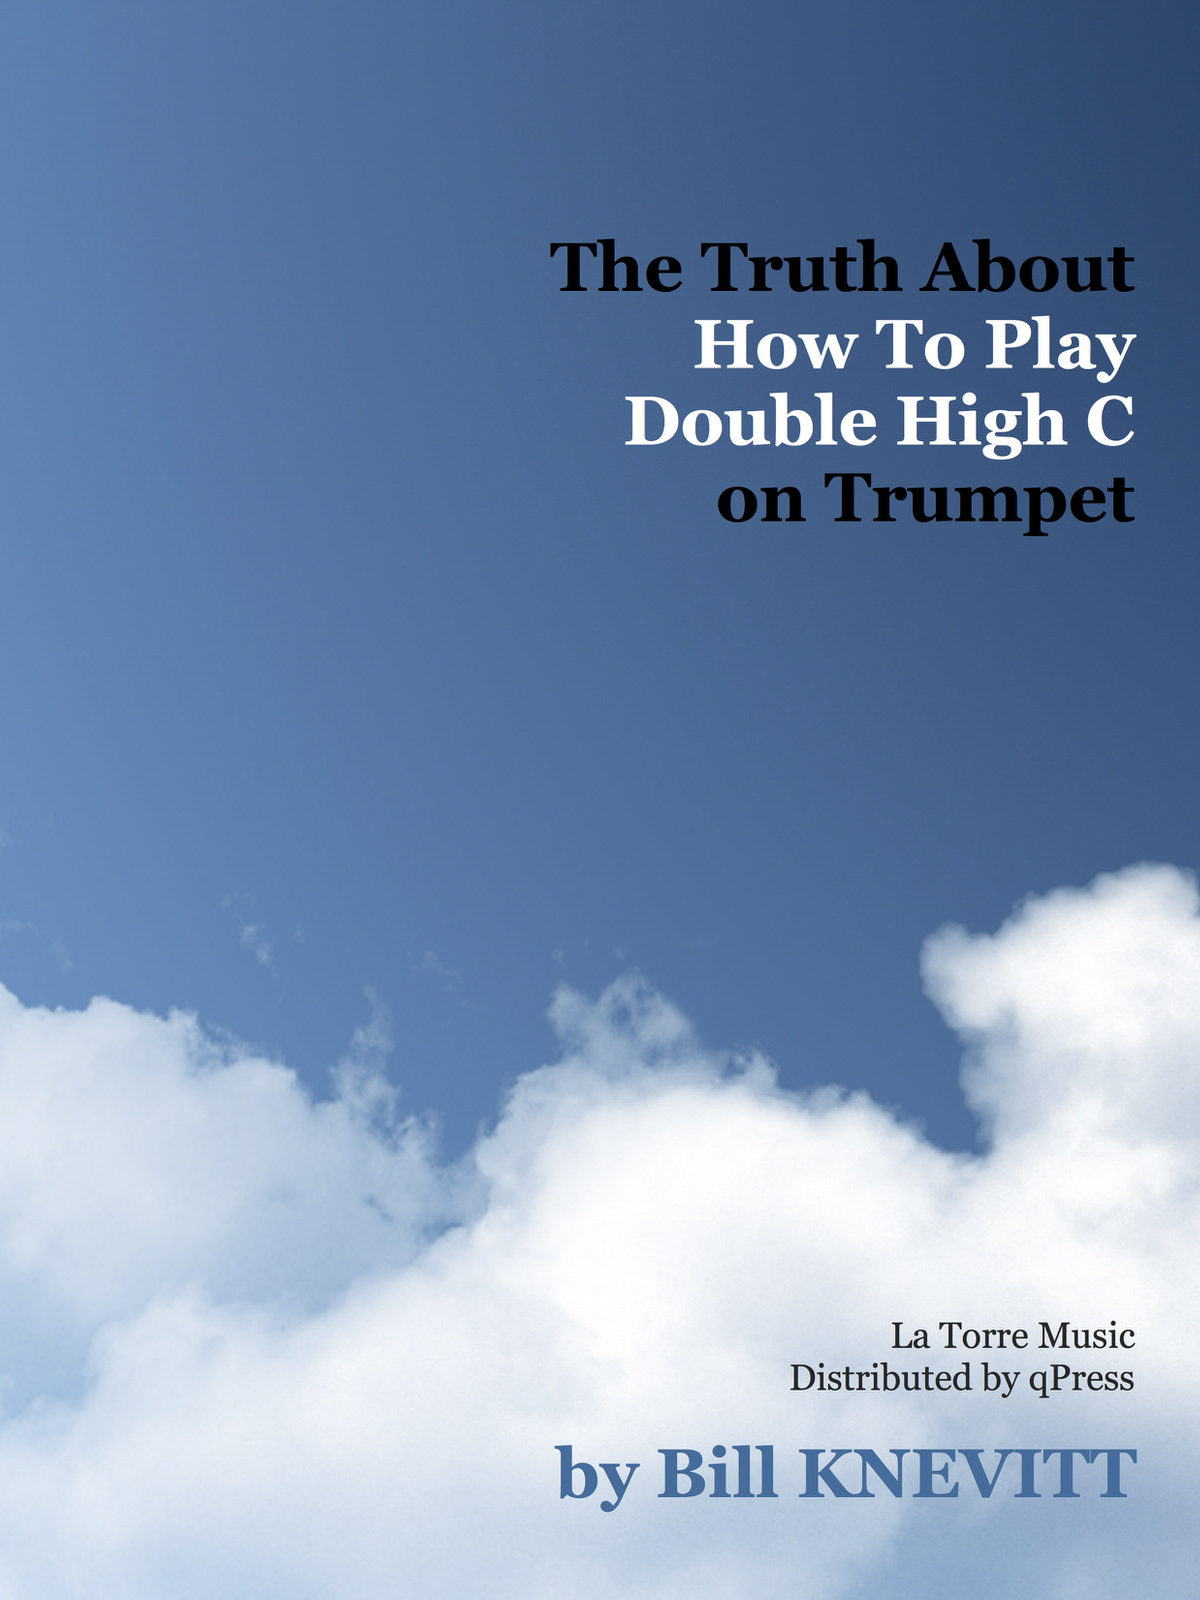 knevitt-the-truth-about-how-to-play-double-high-c-on-trumpet